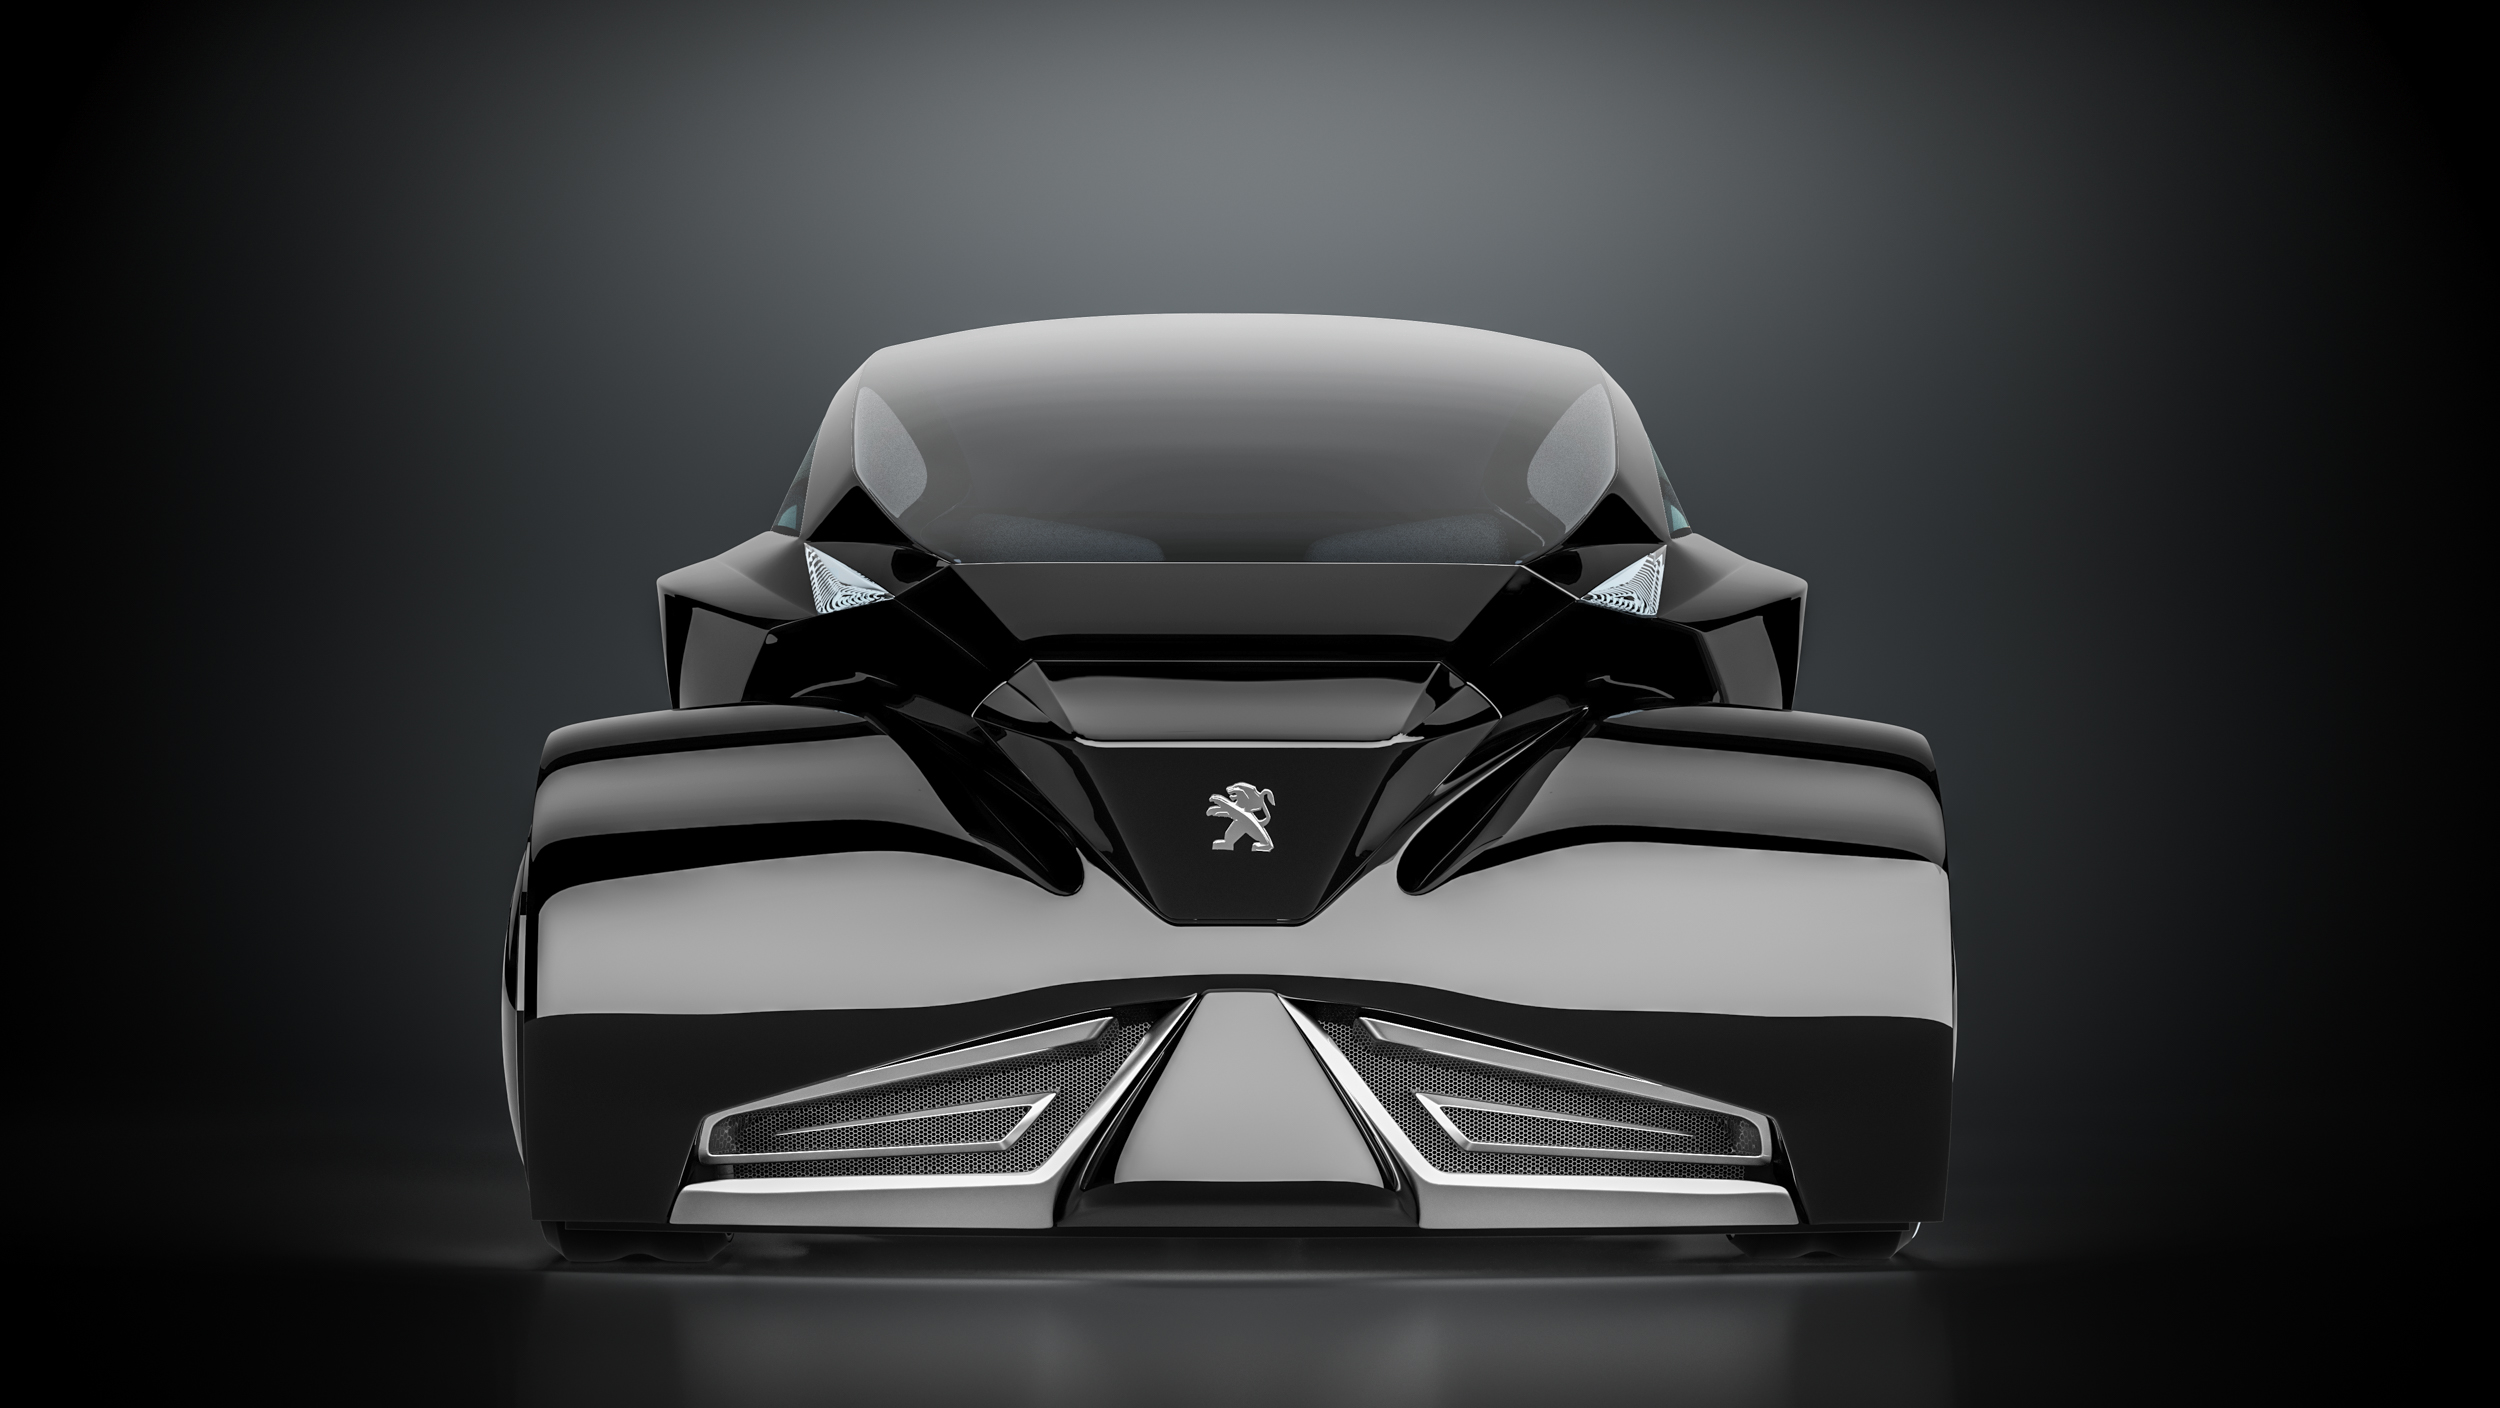 Peugeot Concept car design Product design Bournemouth London UK